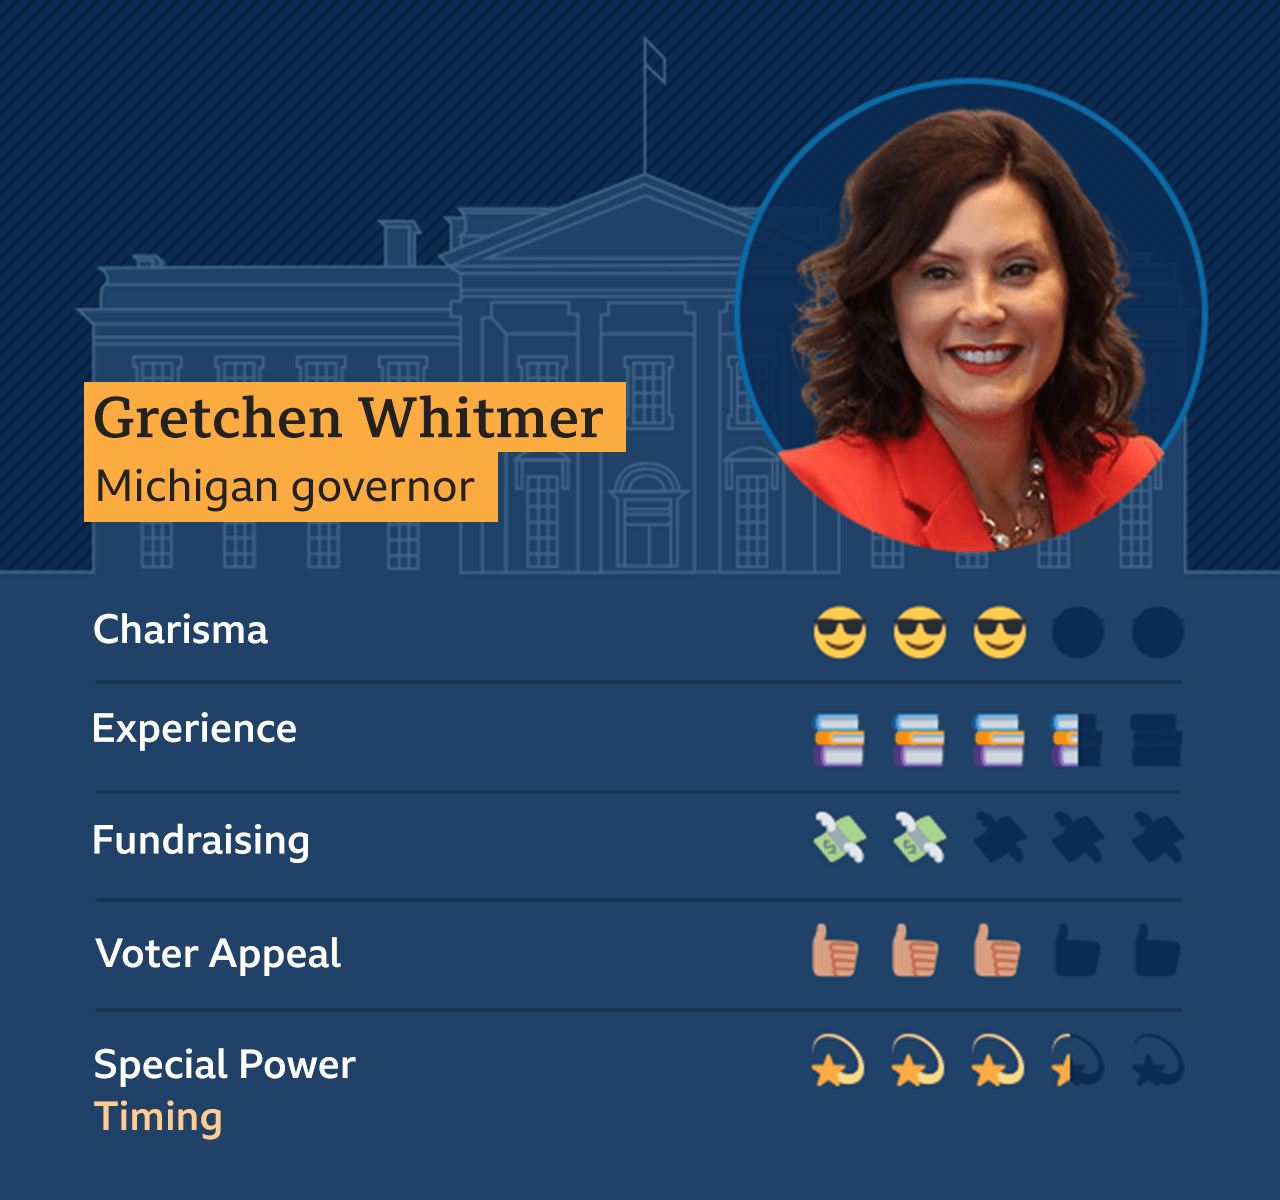 Graphic showing Gretchen Whitmer, Michigan Governor: Charisma - 3, Experience - 3.5, Fundraising - 2, Voter appeal - 3, Special Power - Timing - 3.5